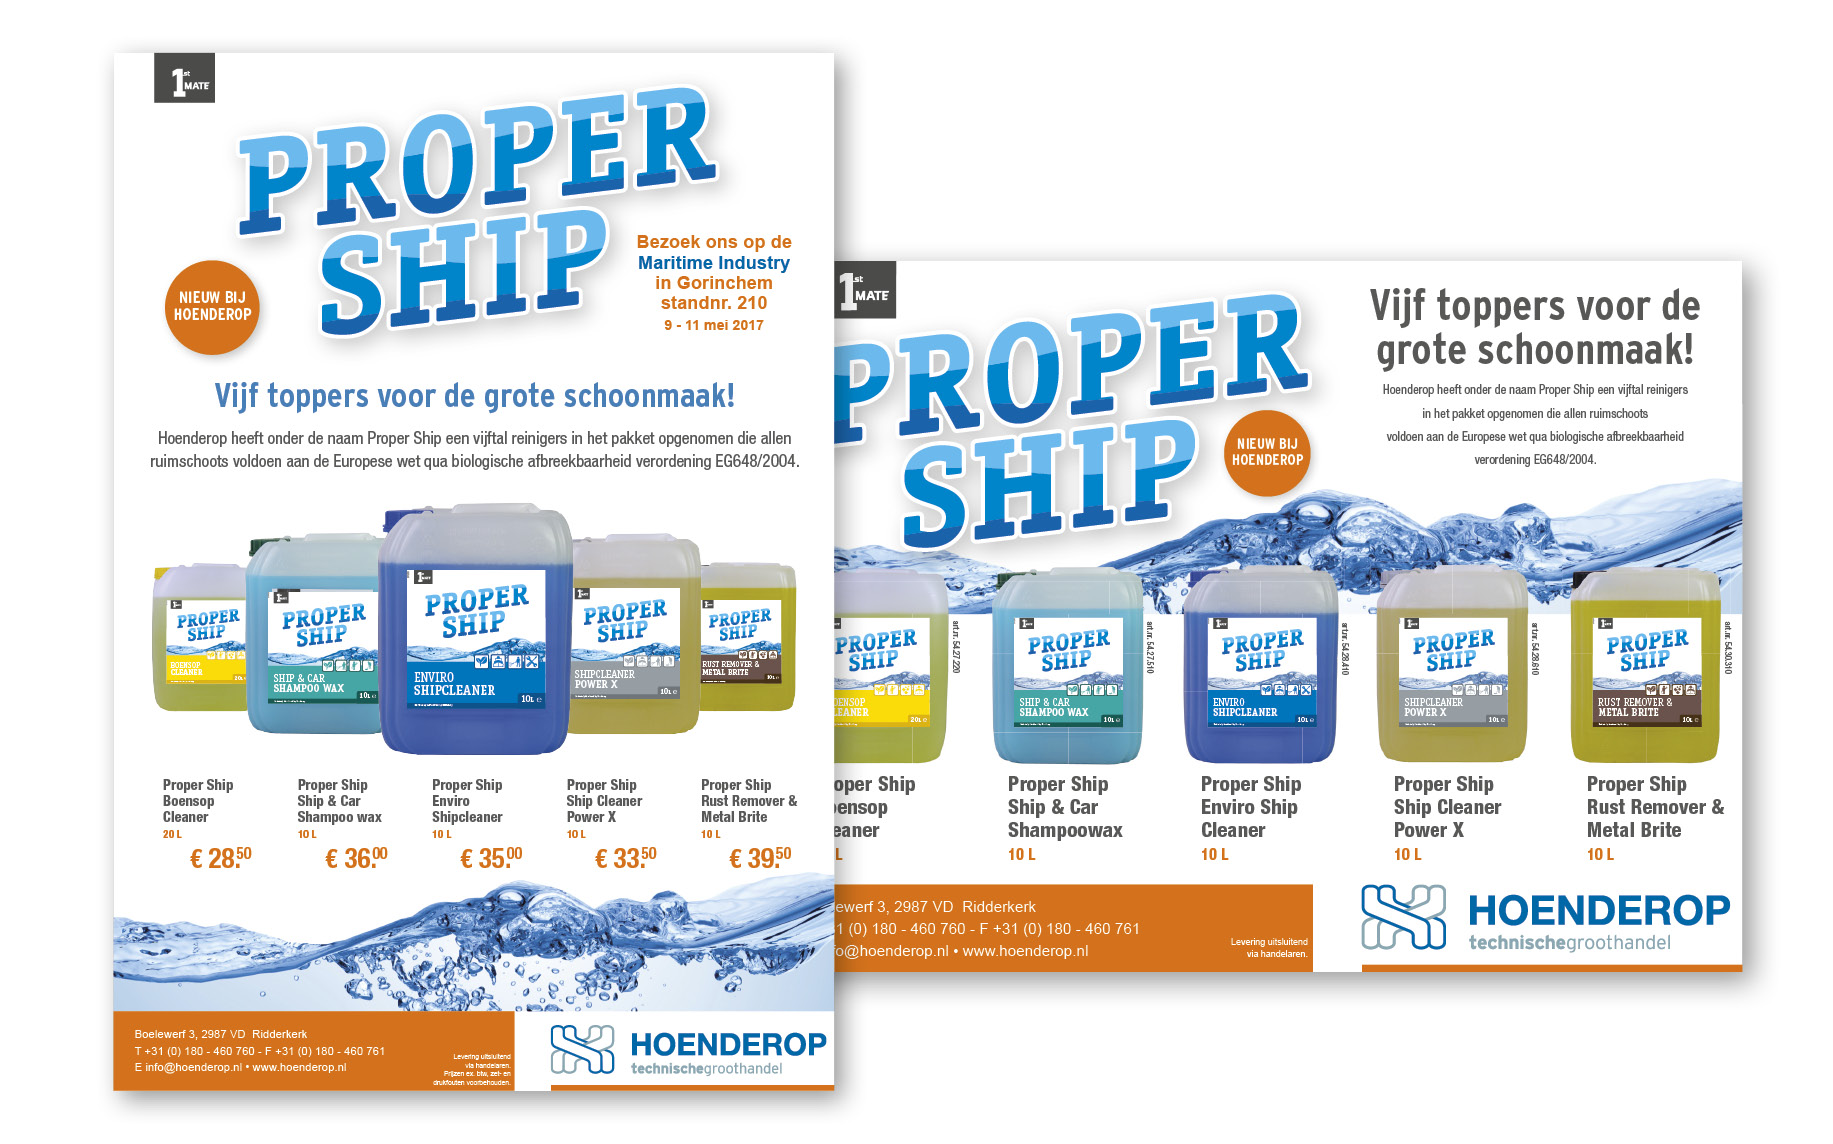 advertenties-hoenderop-propership